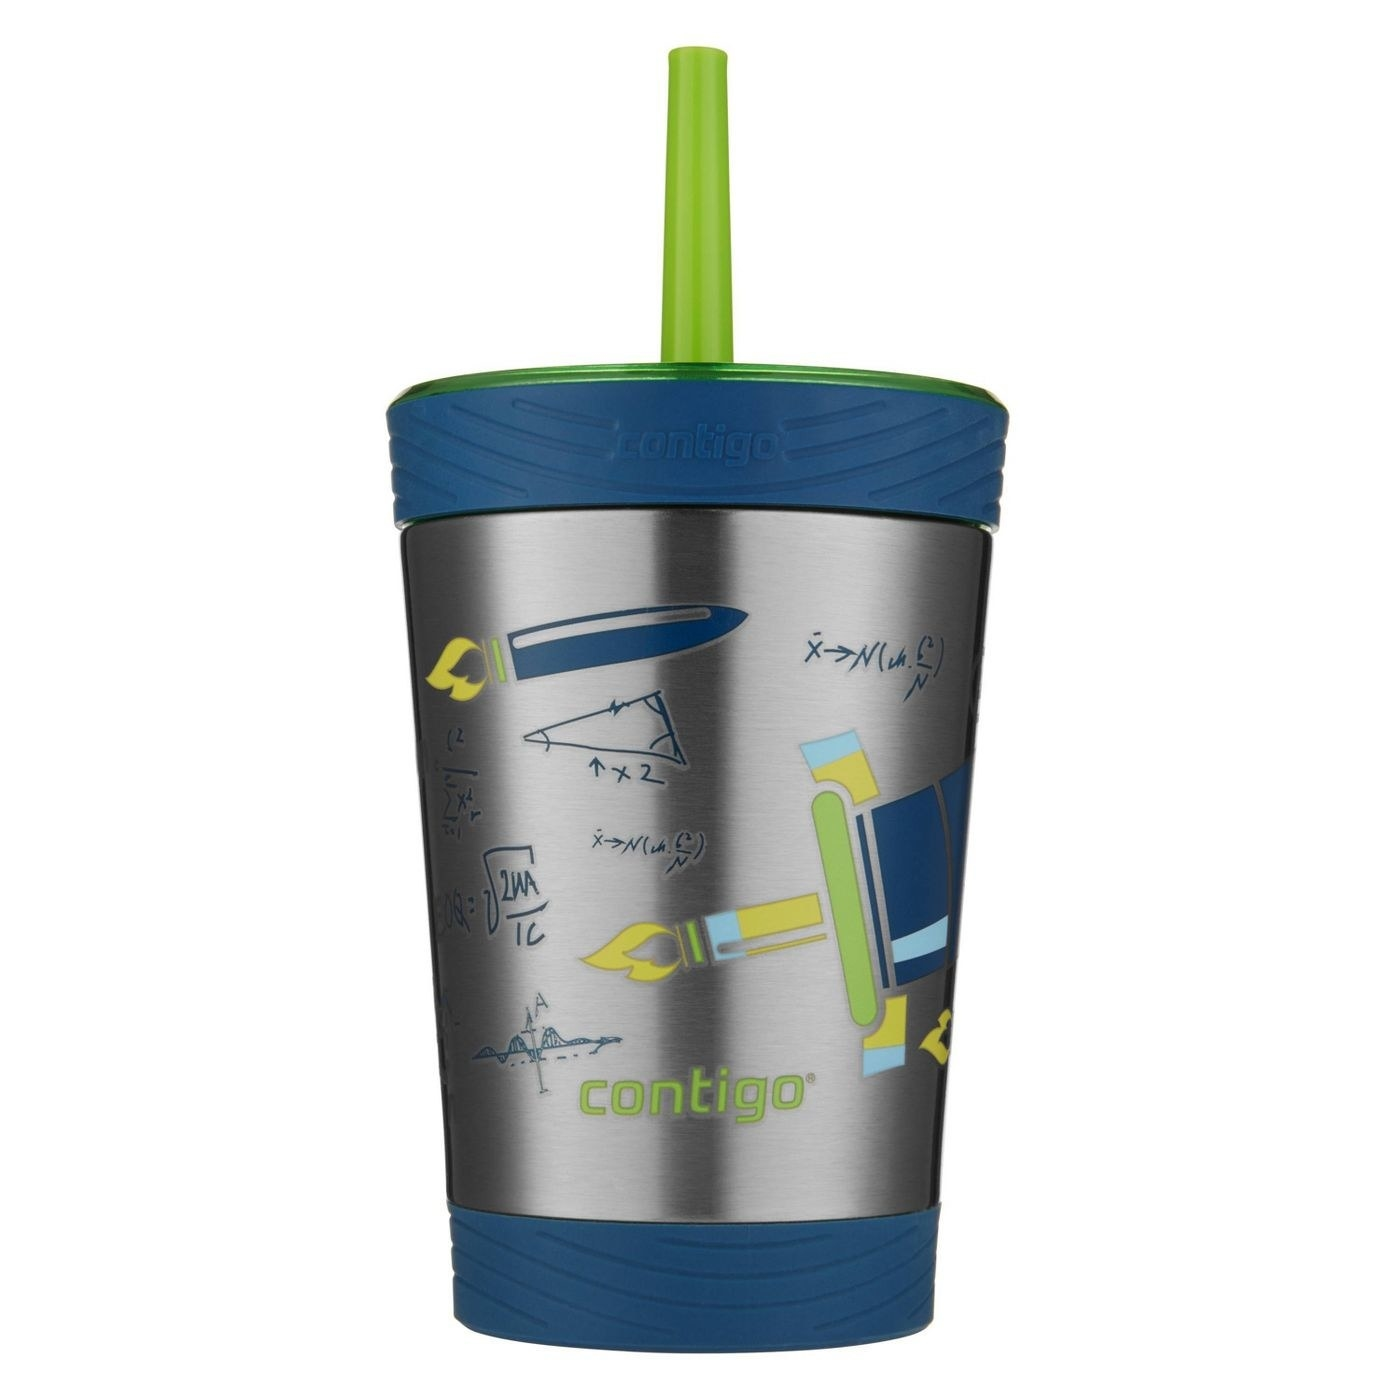 A stainless steal kids cup with green and blue space images